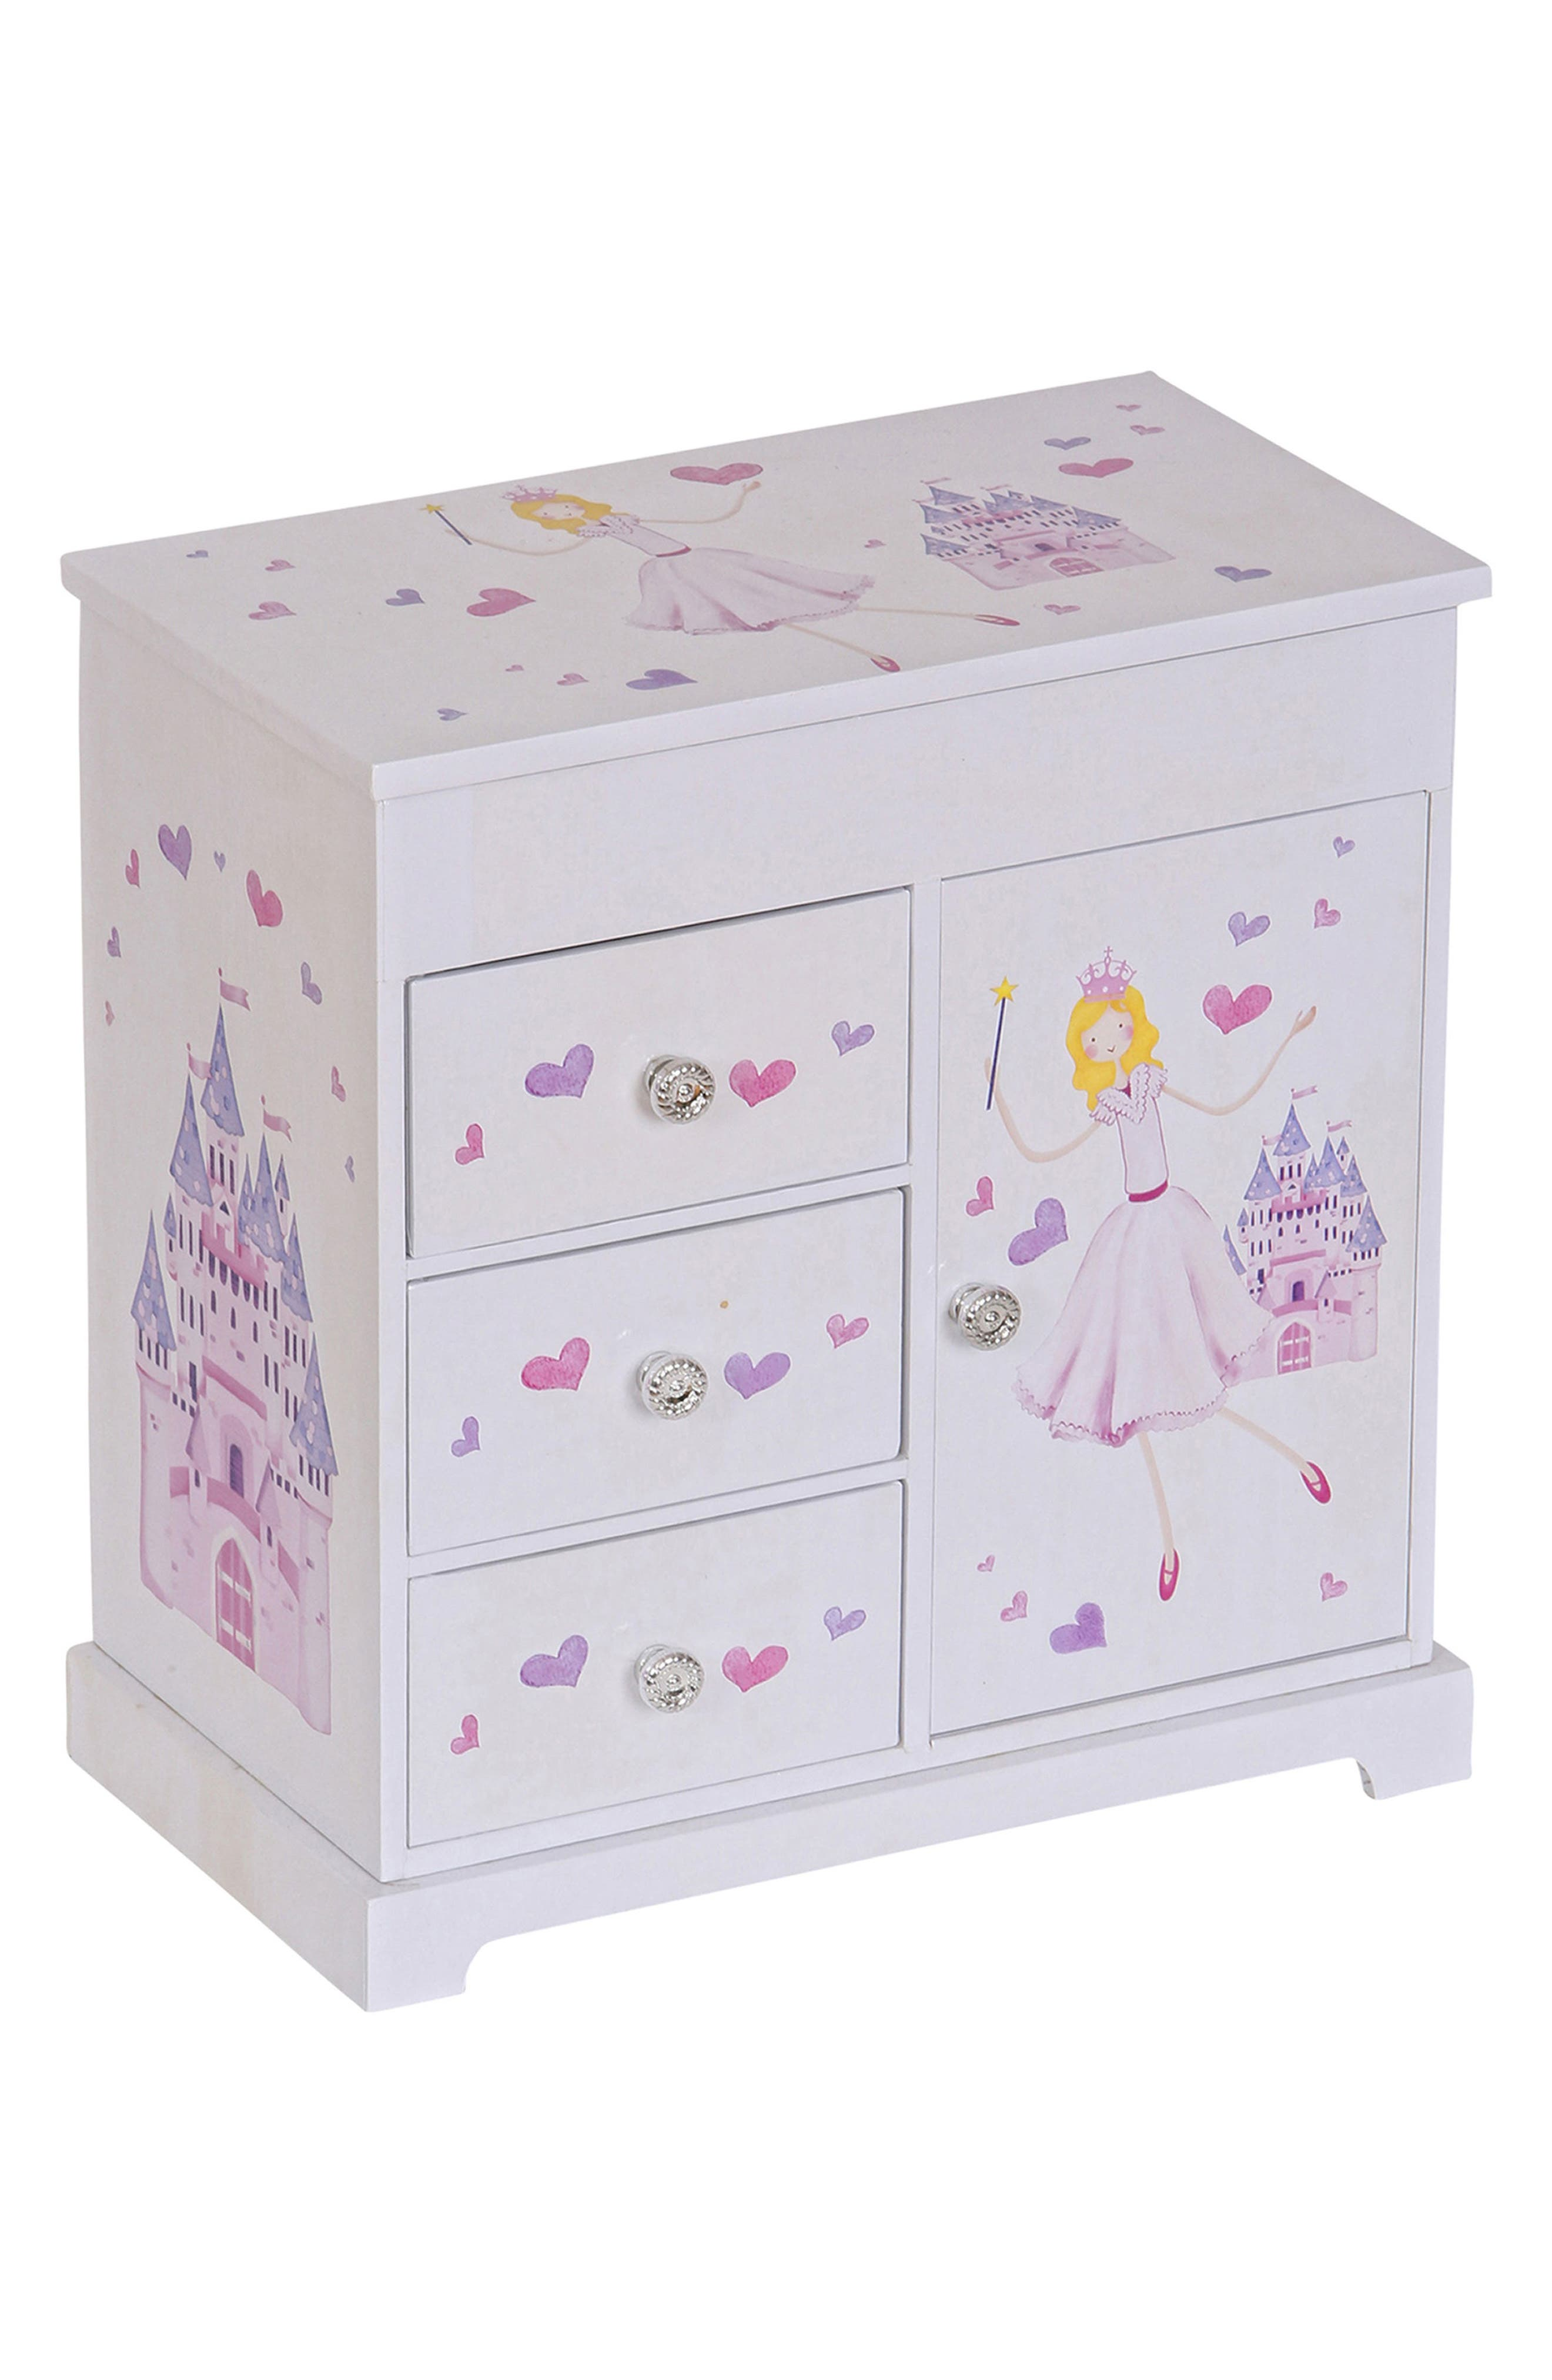 Adalyn Musical Jewelry Box,                             Main thumbnail 1, color,                             WHITE